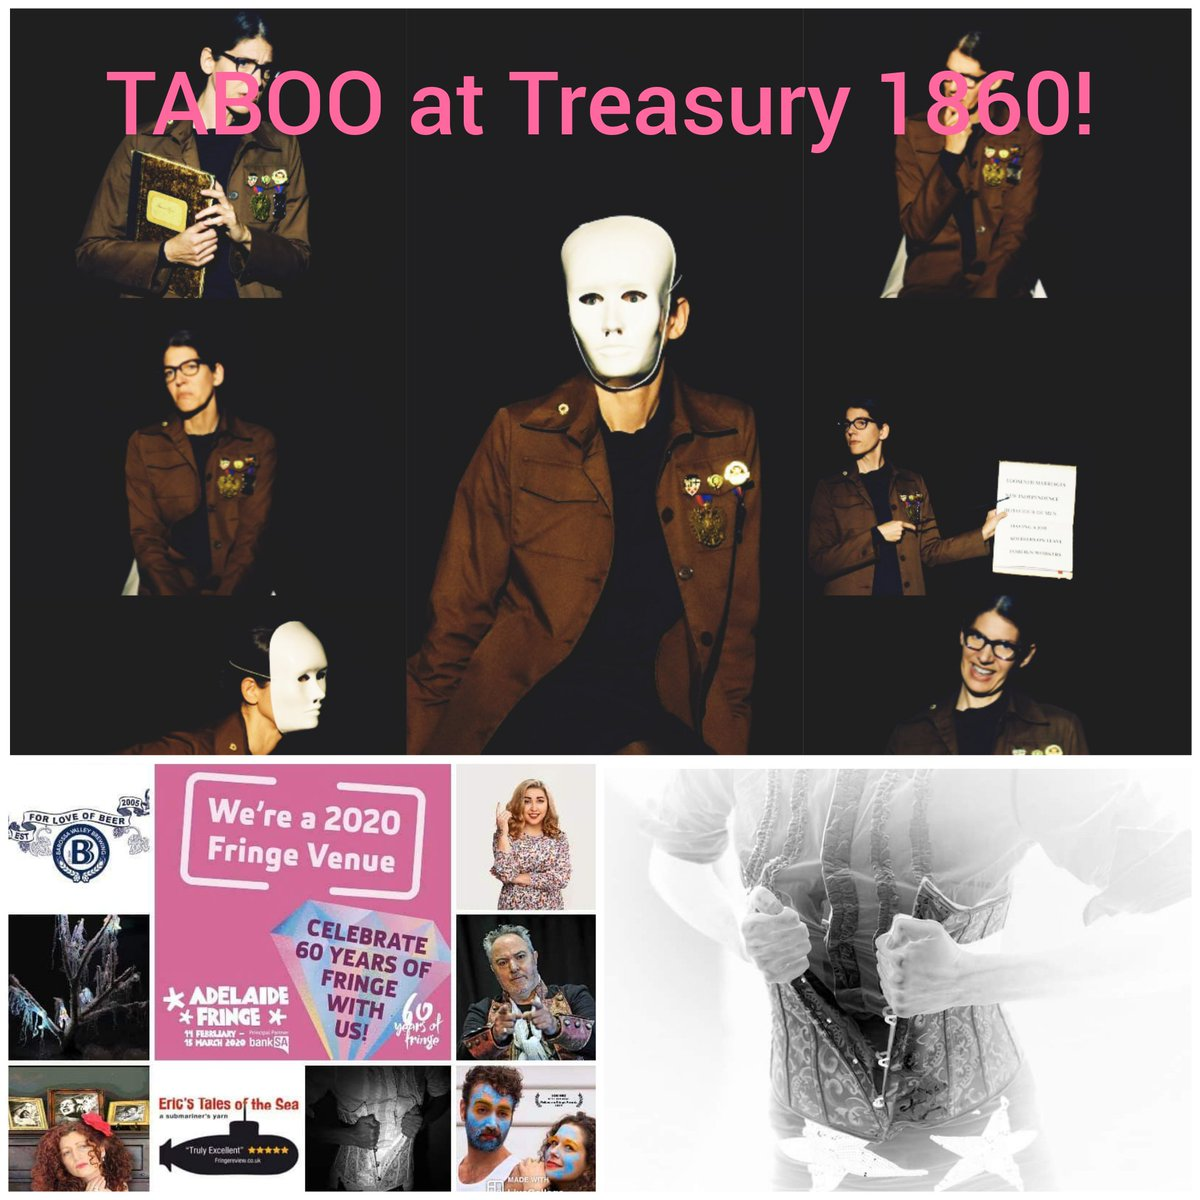 18th Feb - 4th March 2020 at #treasury1860 !!! I am super excited to be performing with the wonderful Anna Thomas at #adelaideFringe this year 🎭 https://t.co/b1laVmsXRY